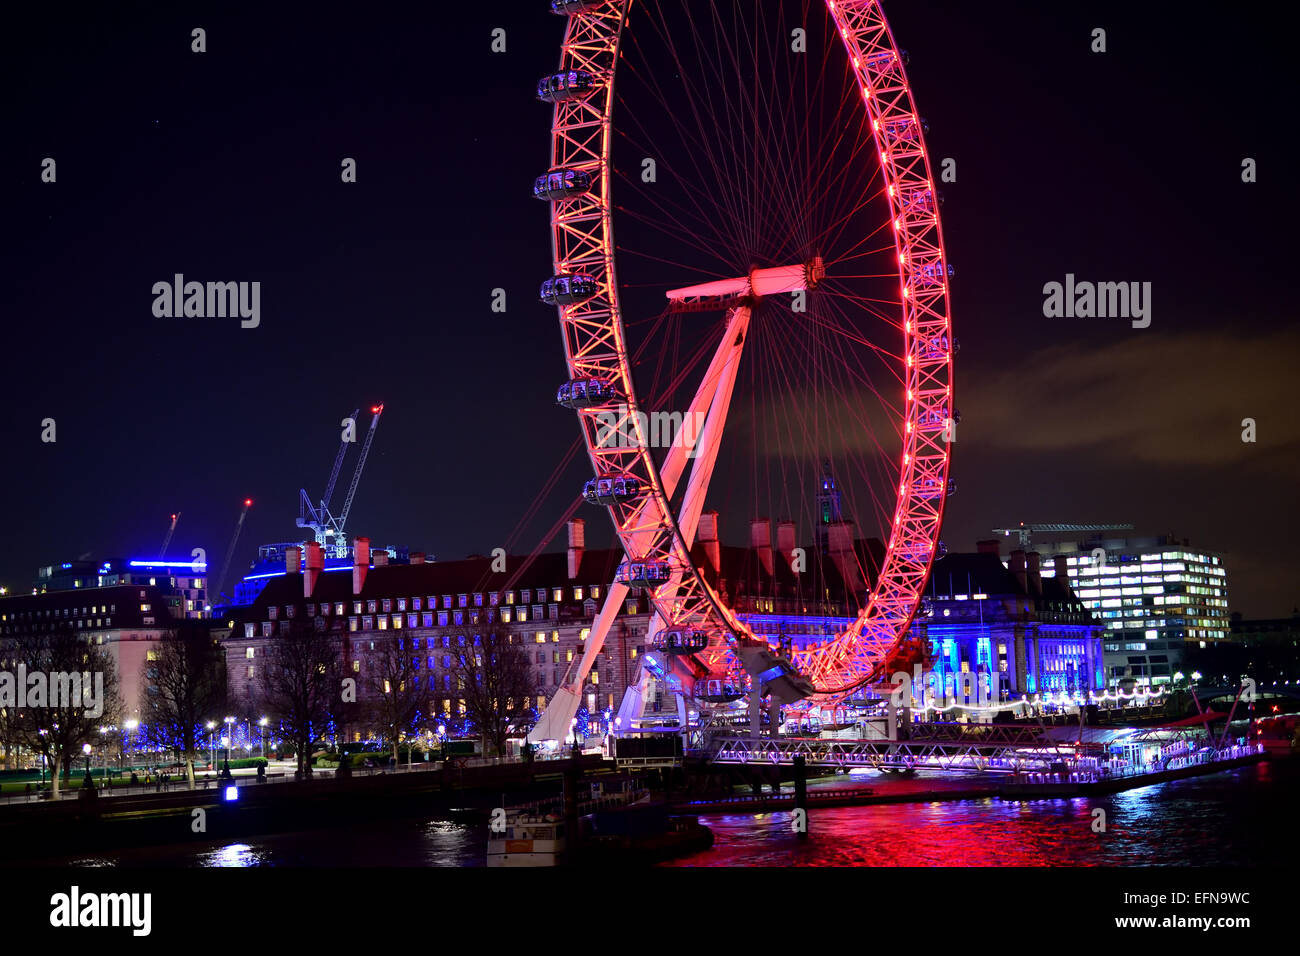 The London eye on Southbank at night - Stock Image